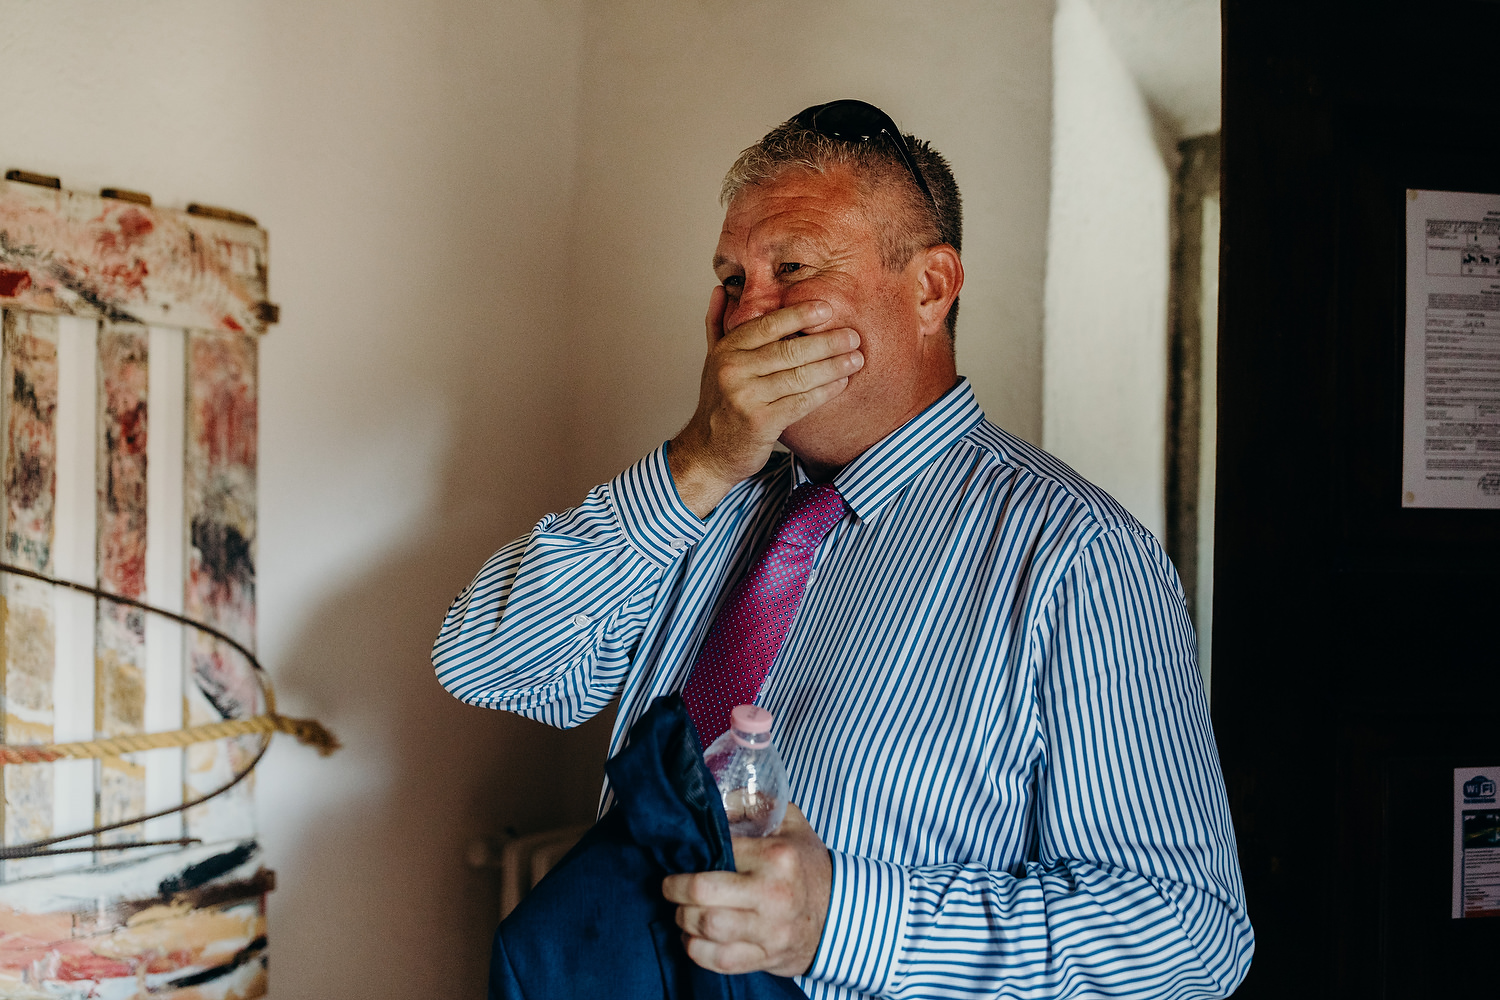 father of groom reaction to bride